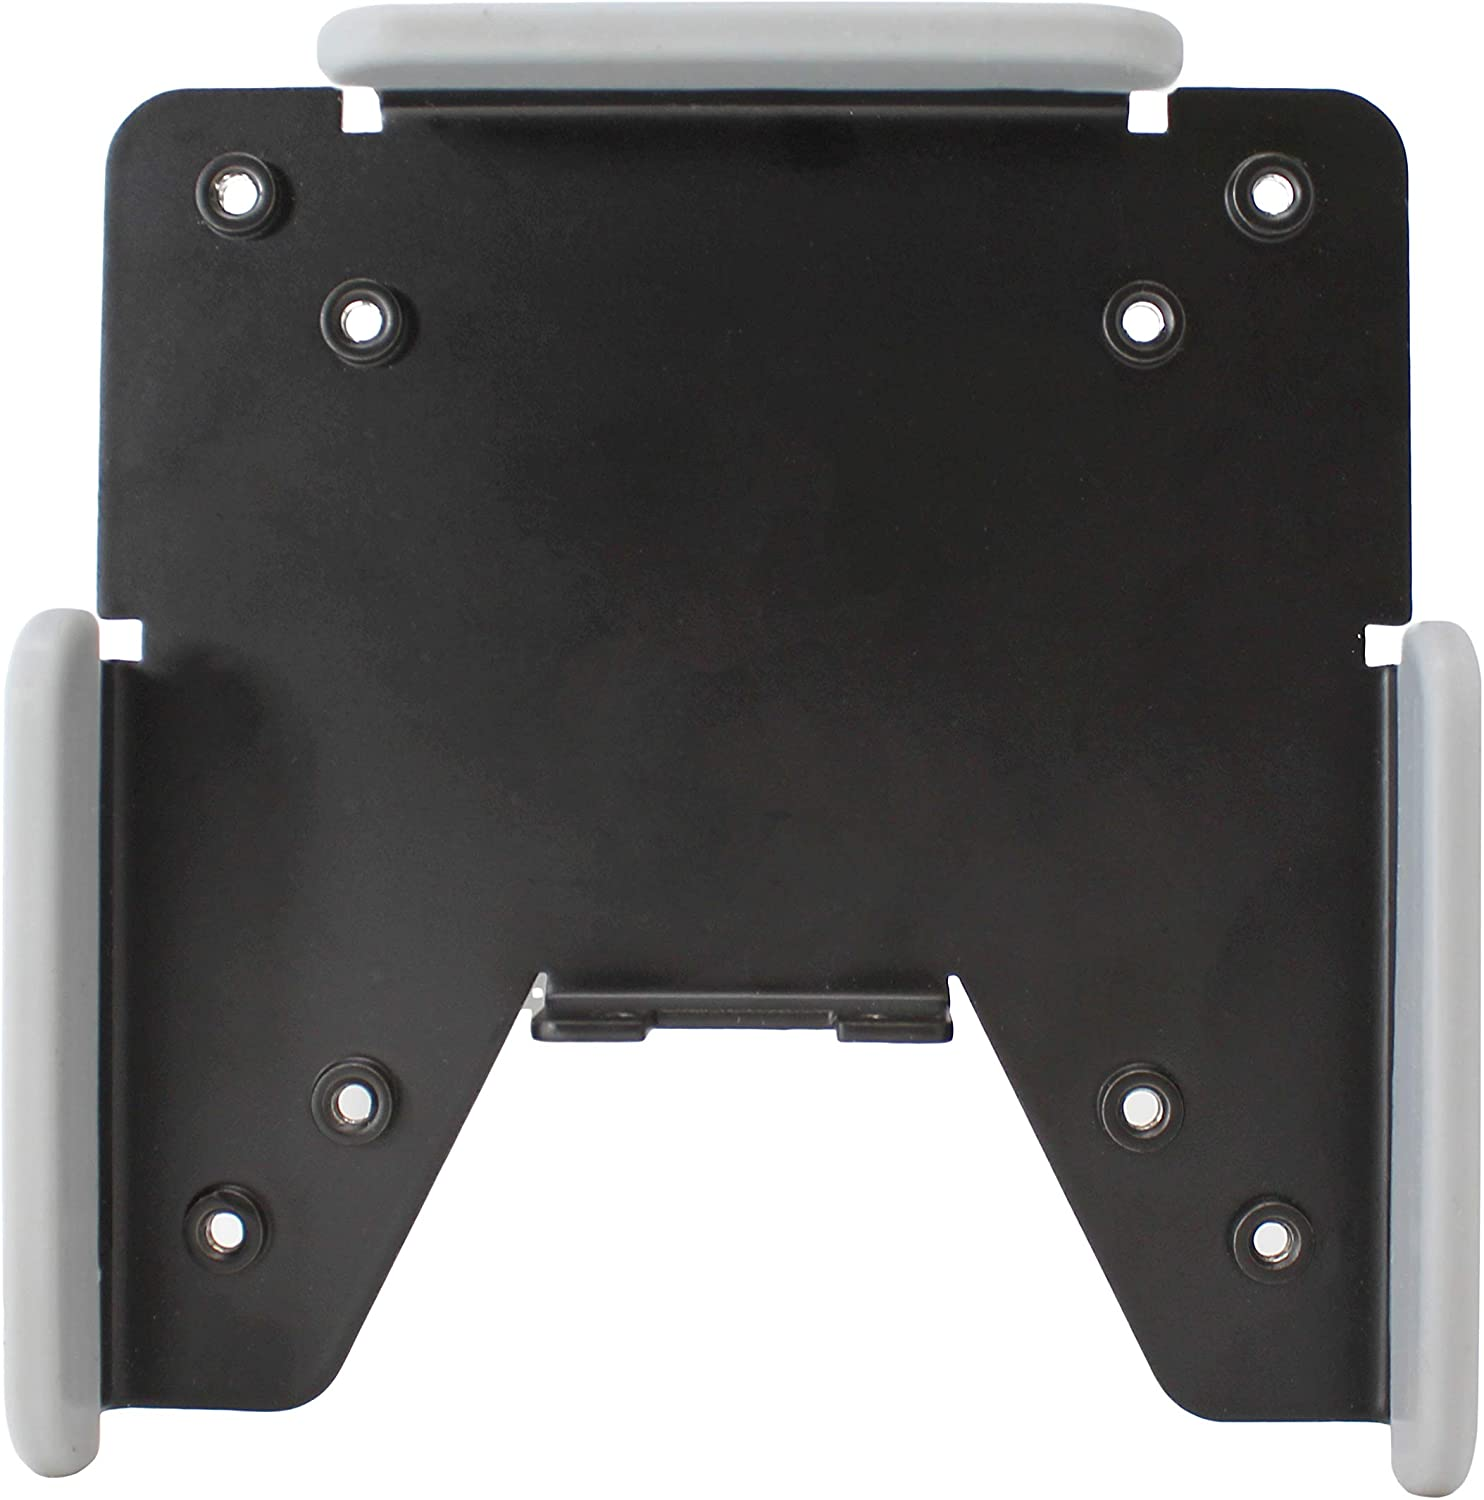 HumanCentric VESA Mount Adapter Bracket Compatible with Dell Ultrathin S2419HM, S2719DM and S2719DC Monitors | Does Not Fit S2319H, S2419H, S2719H Monitors